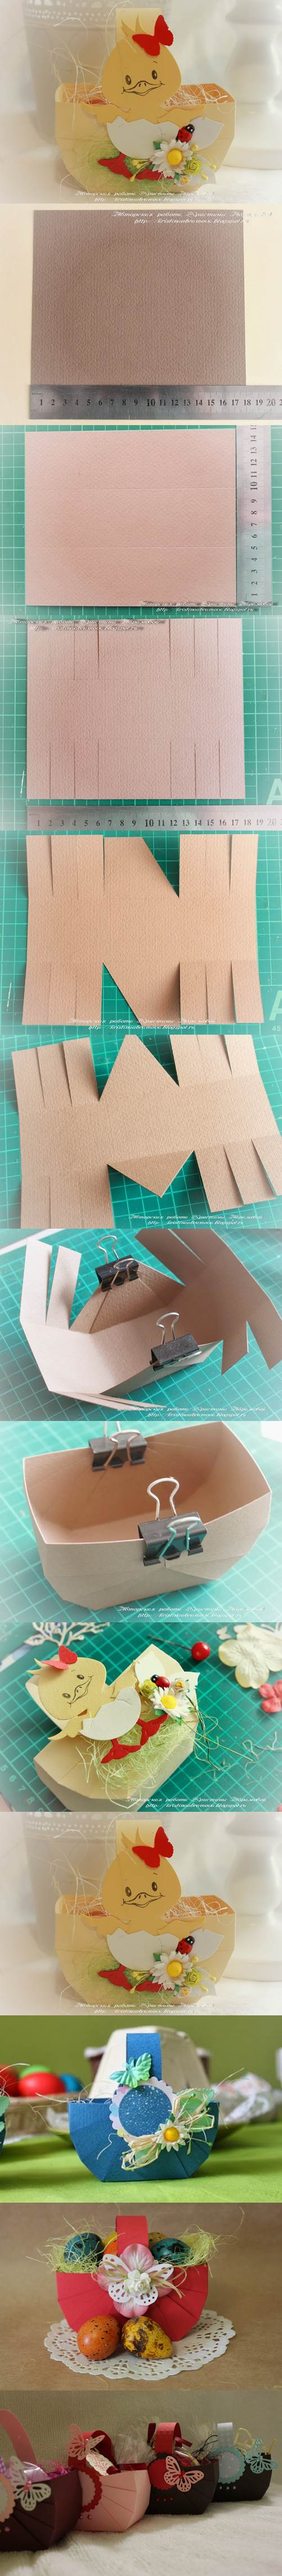 DIY Easy Cardboard Easter Basket 2